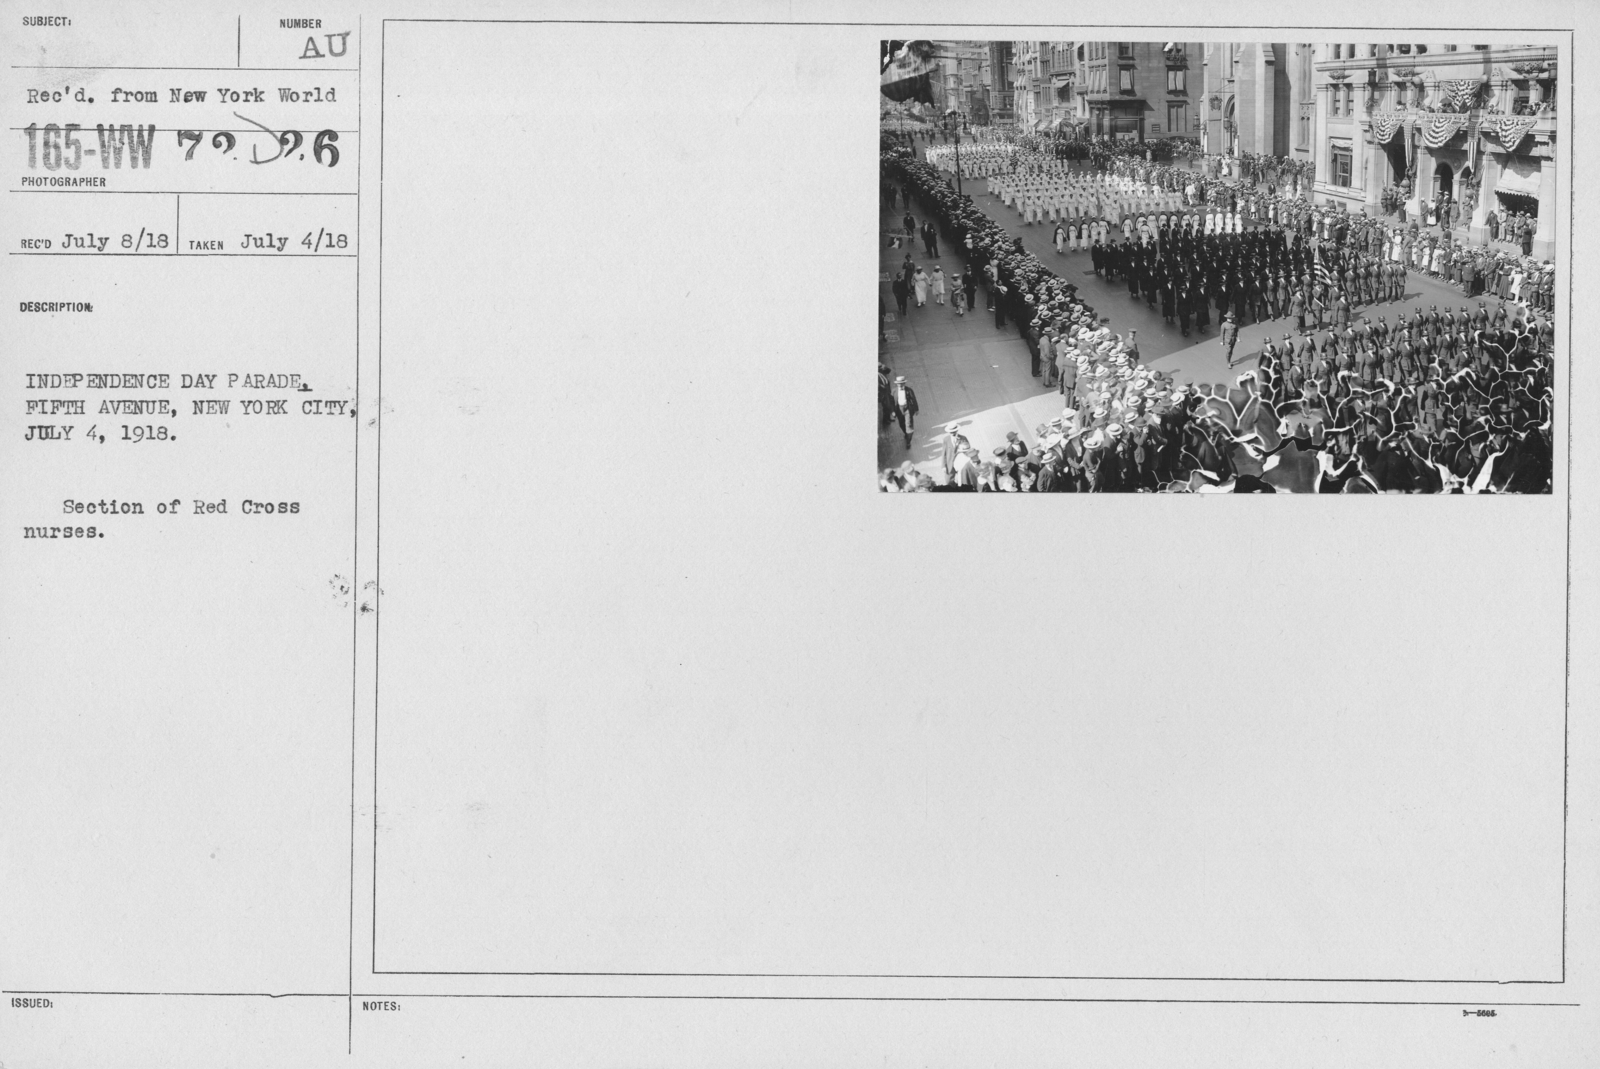 Ceremonies - Independence Day, 1918 - Independence Day Parade. Fifth Avenue, New York City, July 4, 1918. Section of Red Cross nurses